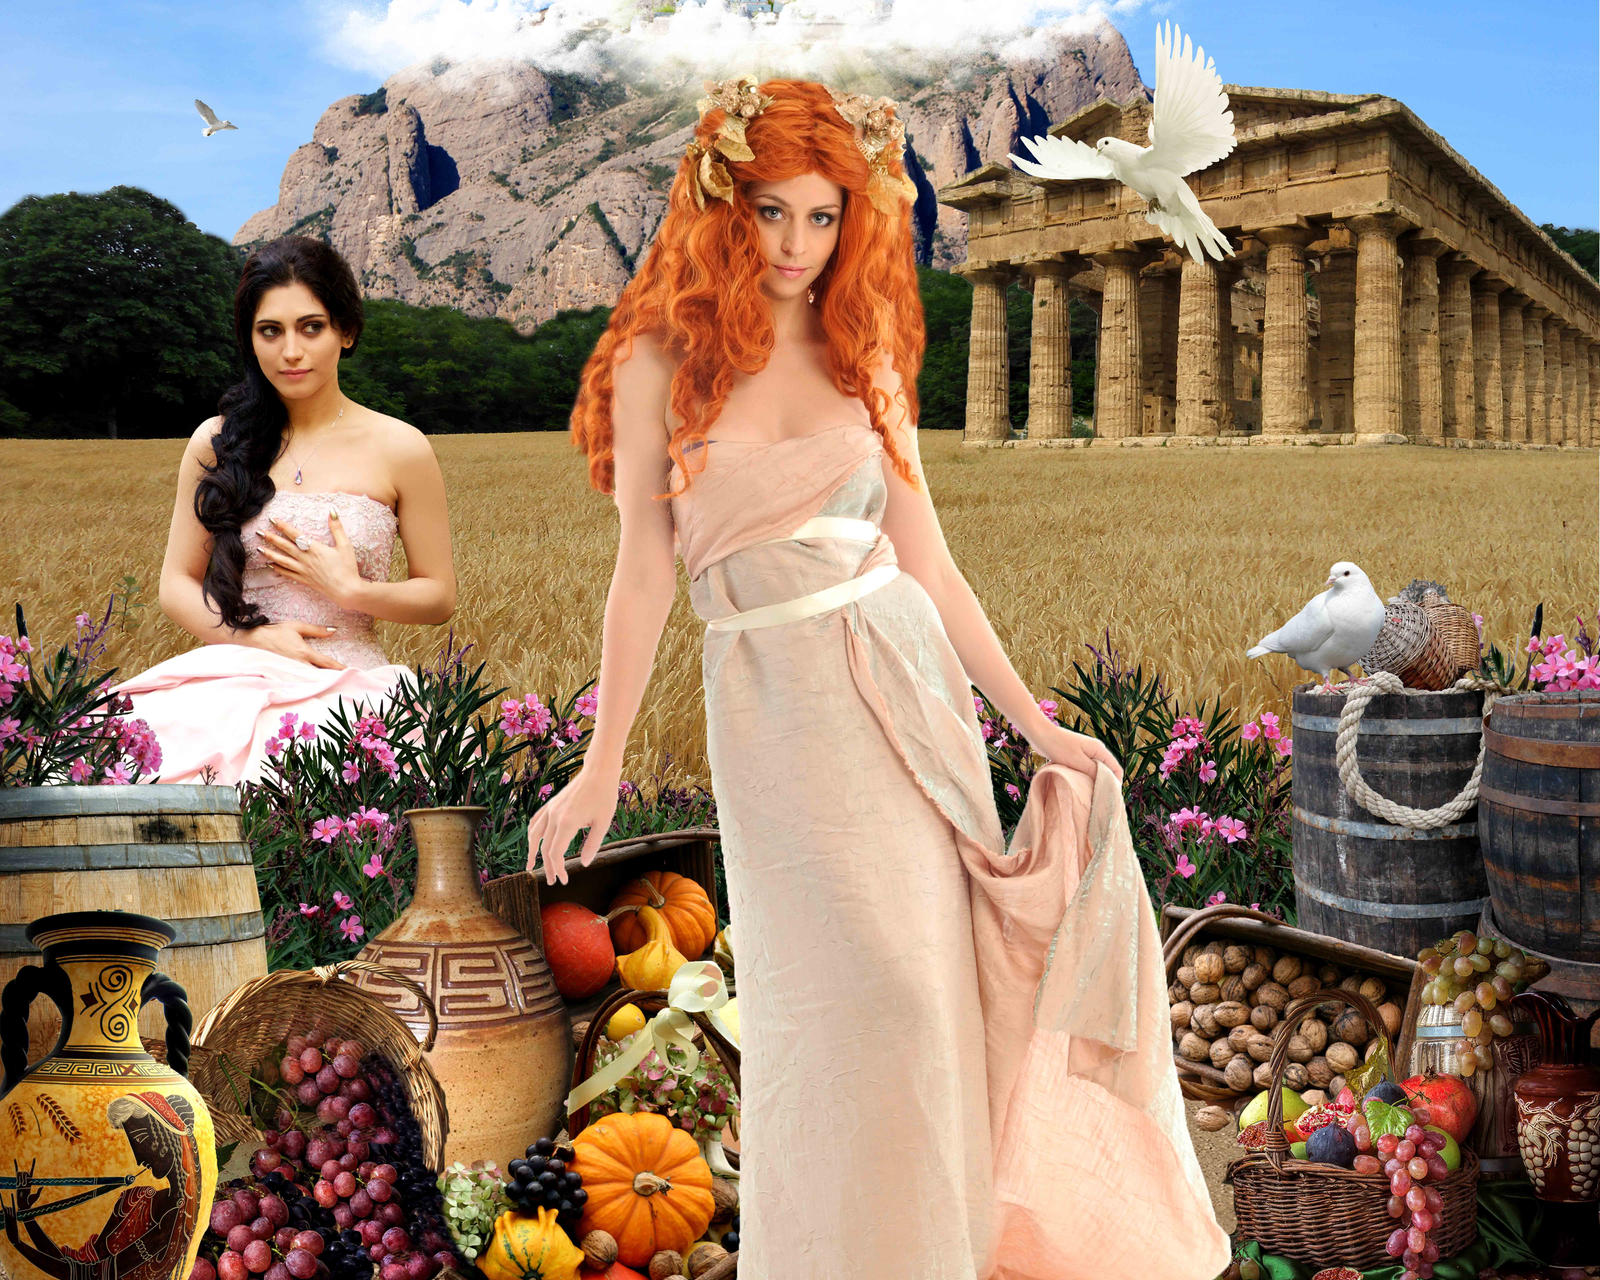 Goddess Demeter and Persephone